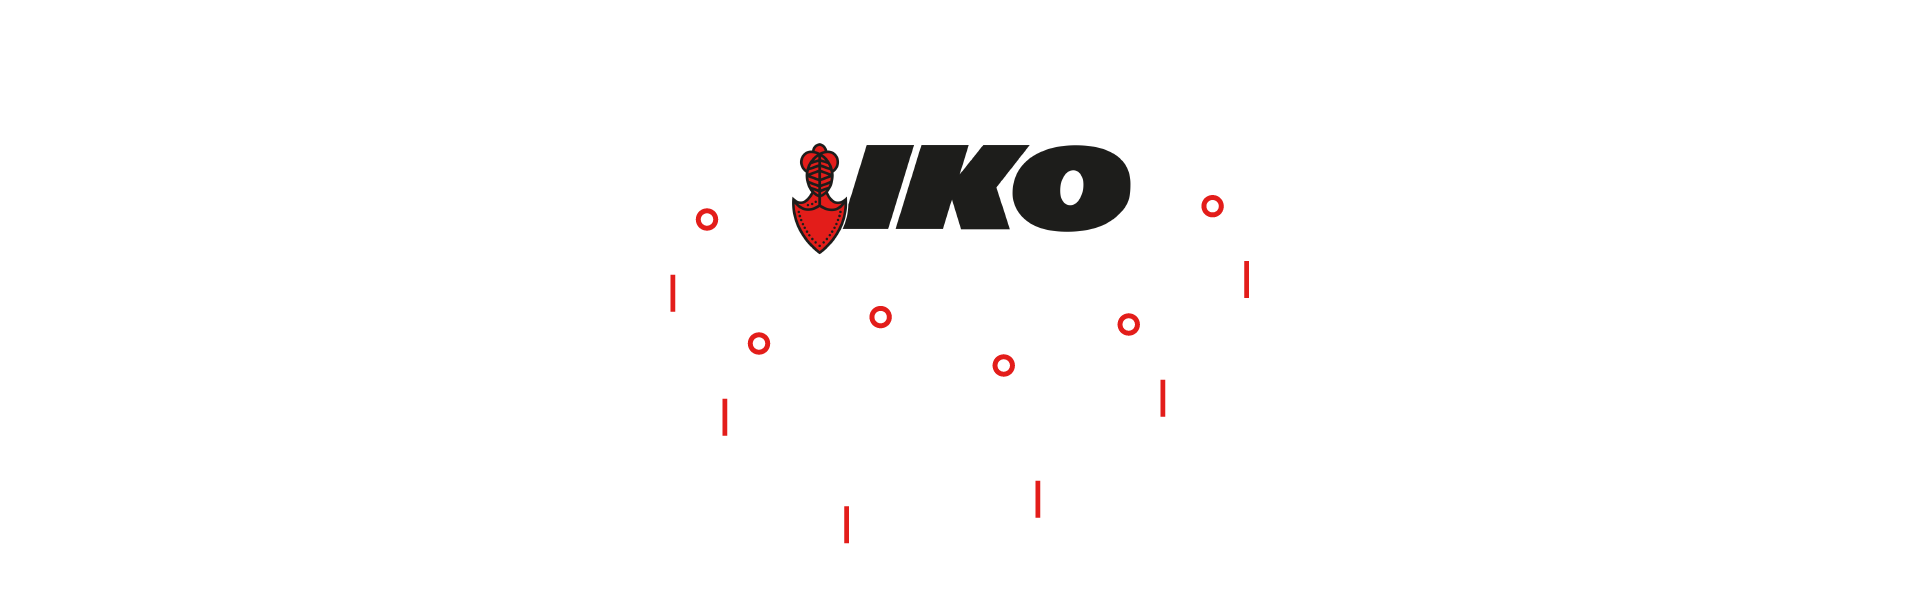 IKO vacancies | Top 6 reasons to choose for IKO